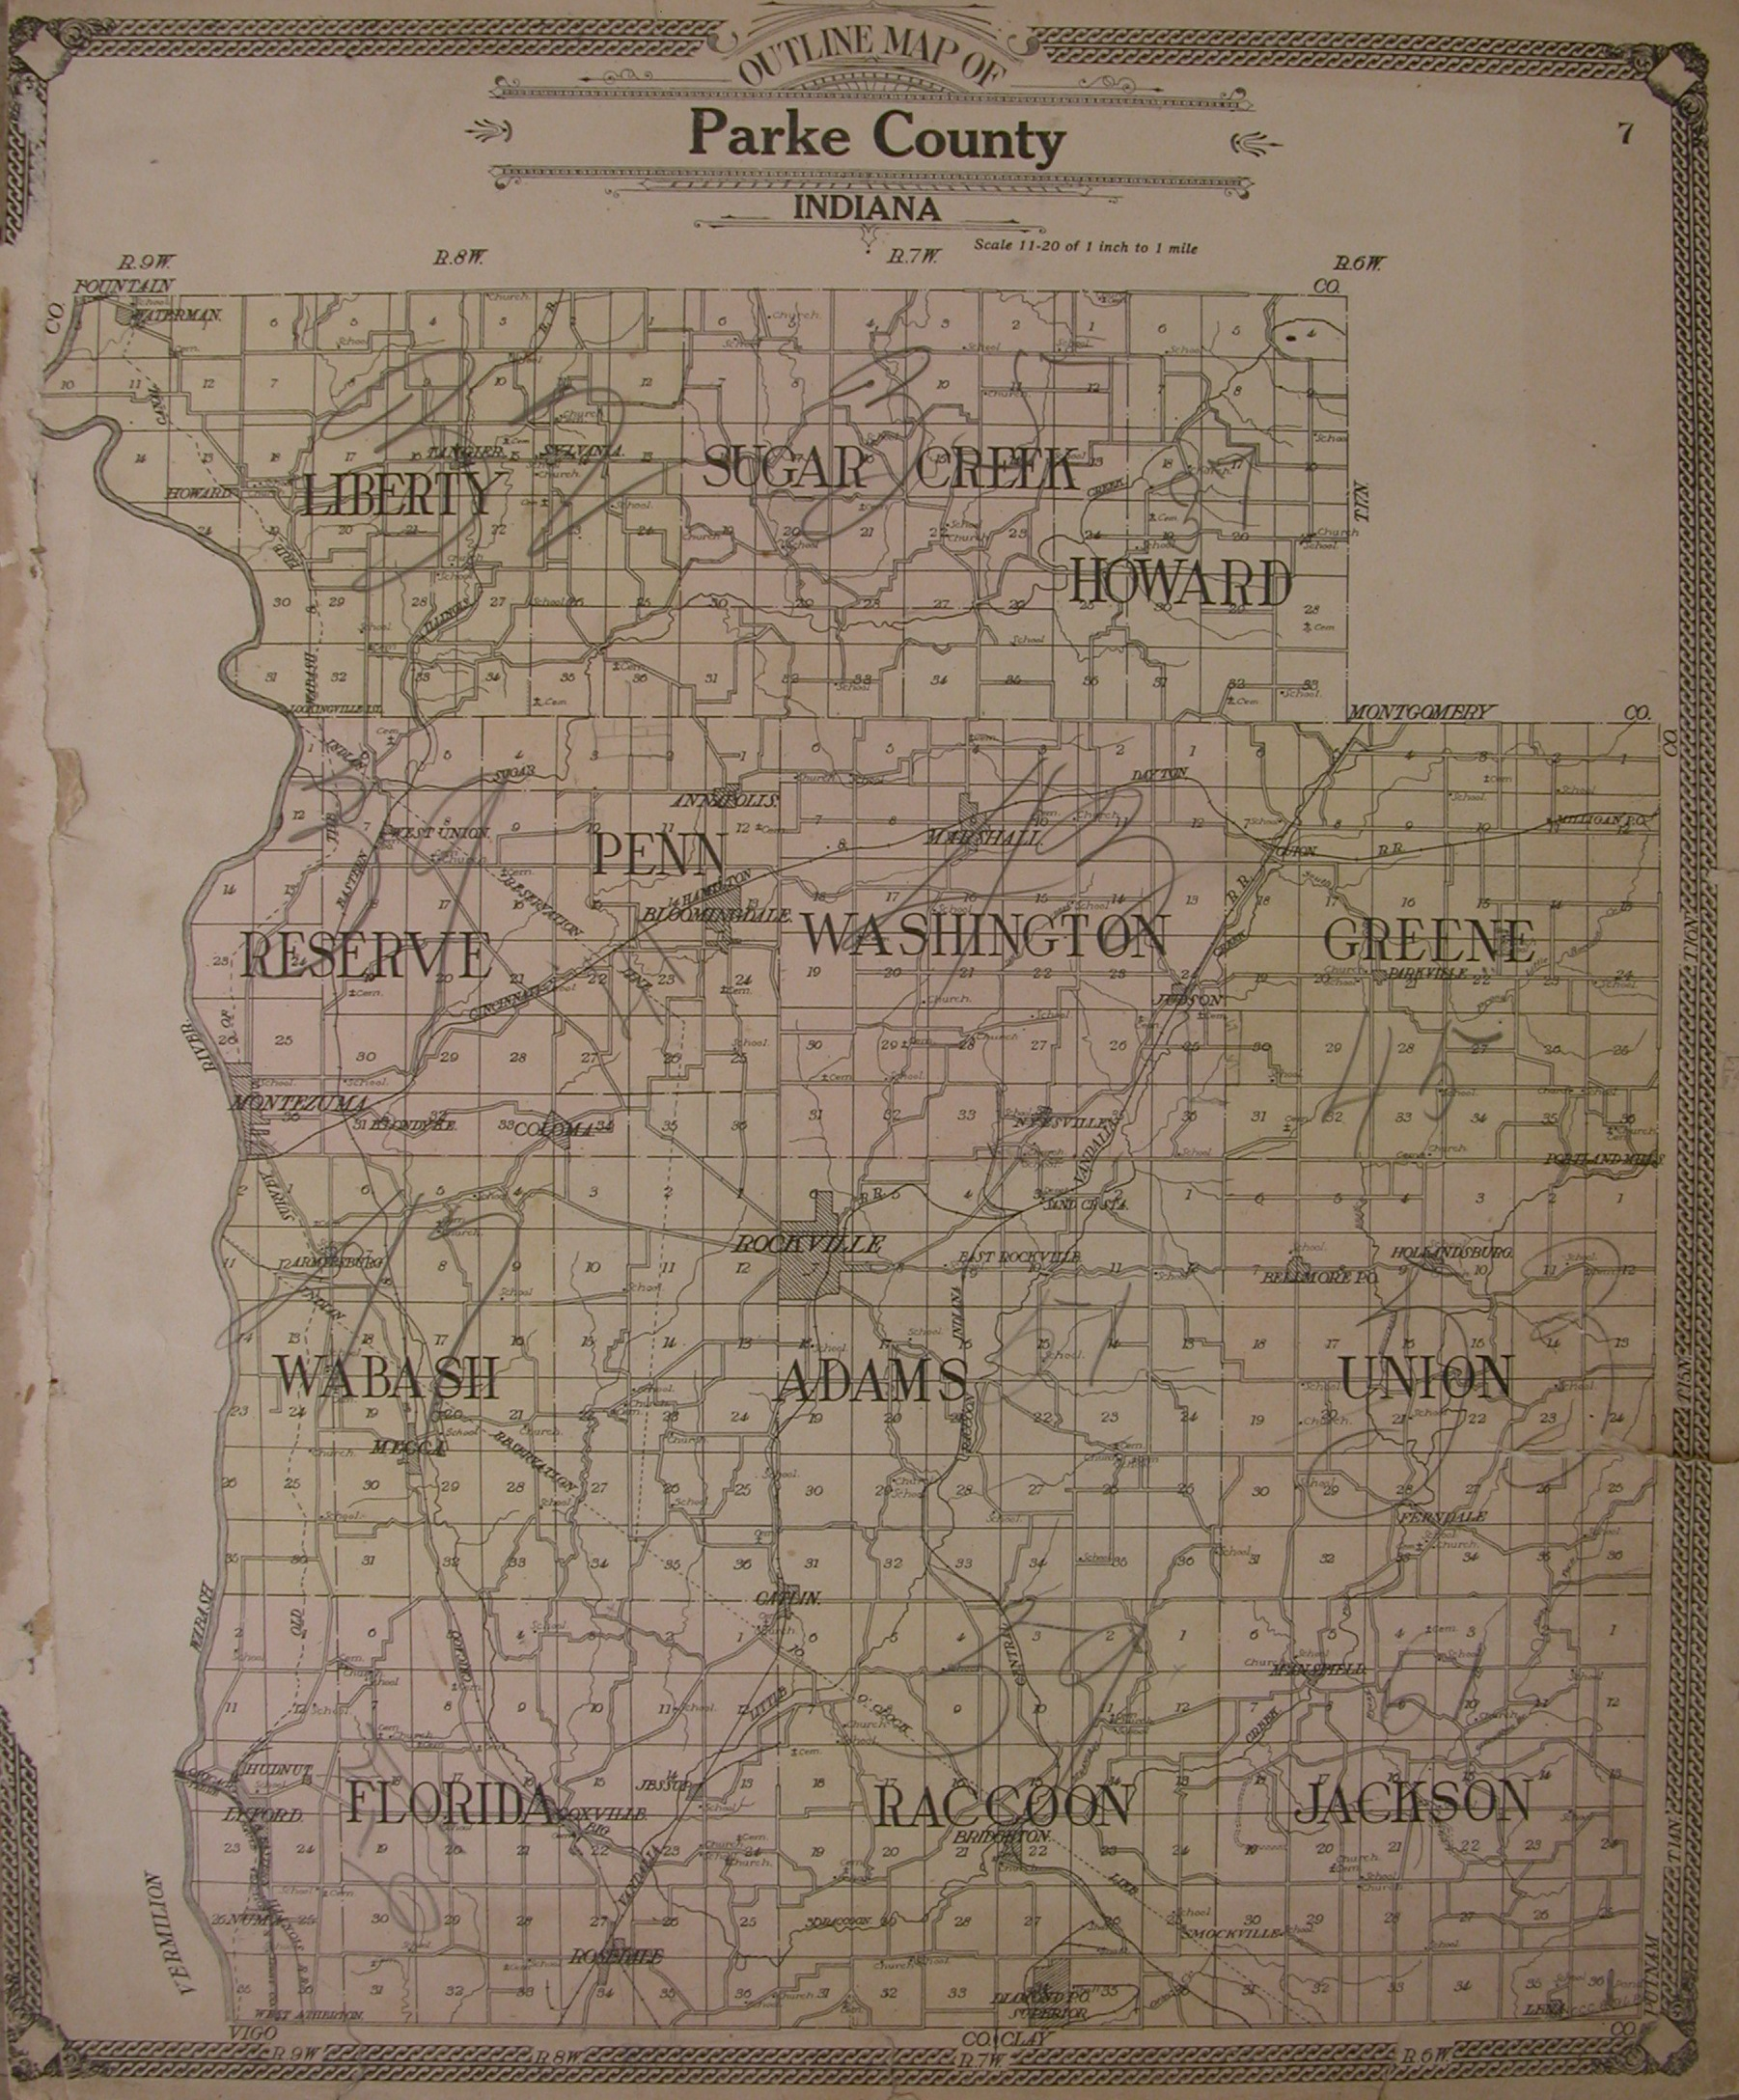 Parke County Indiana 1908 Atlas